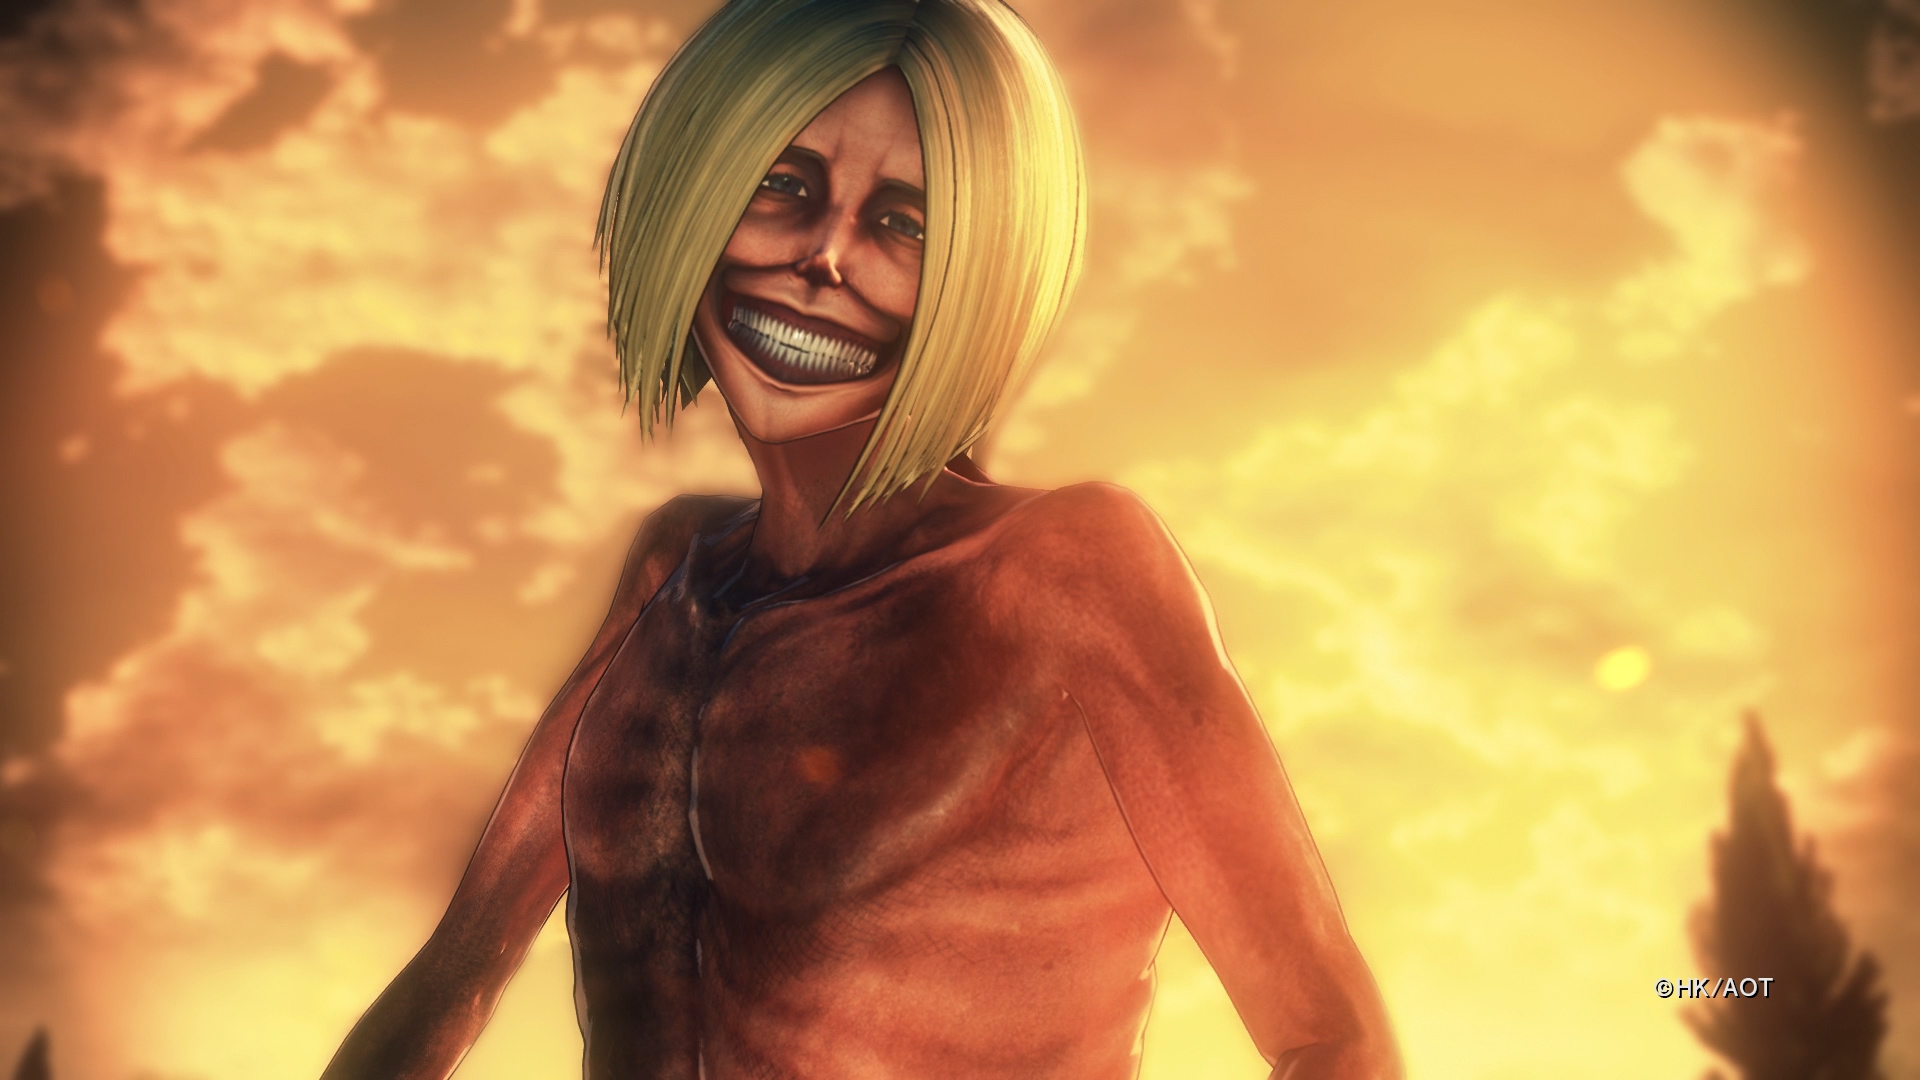 Attack On Titan 2 Revealed, Releasing In 2018